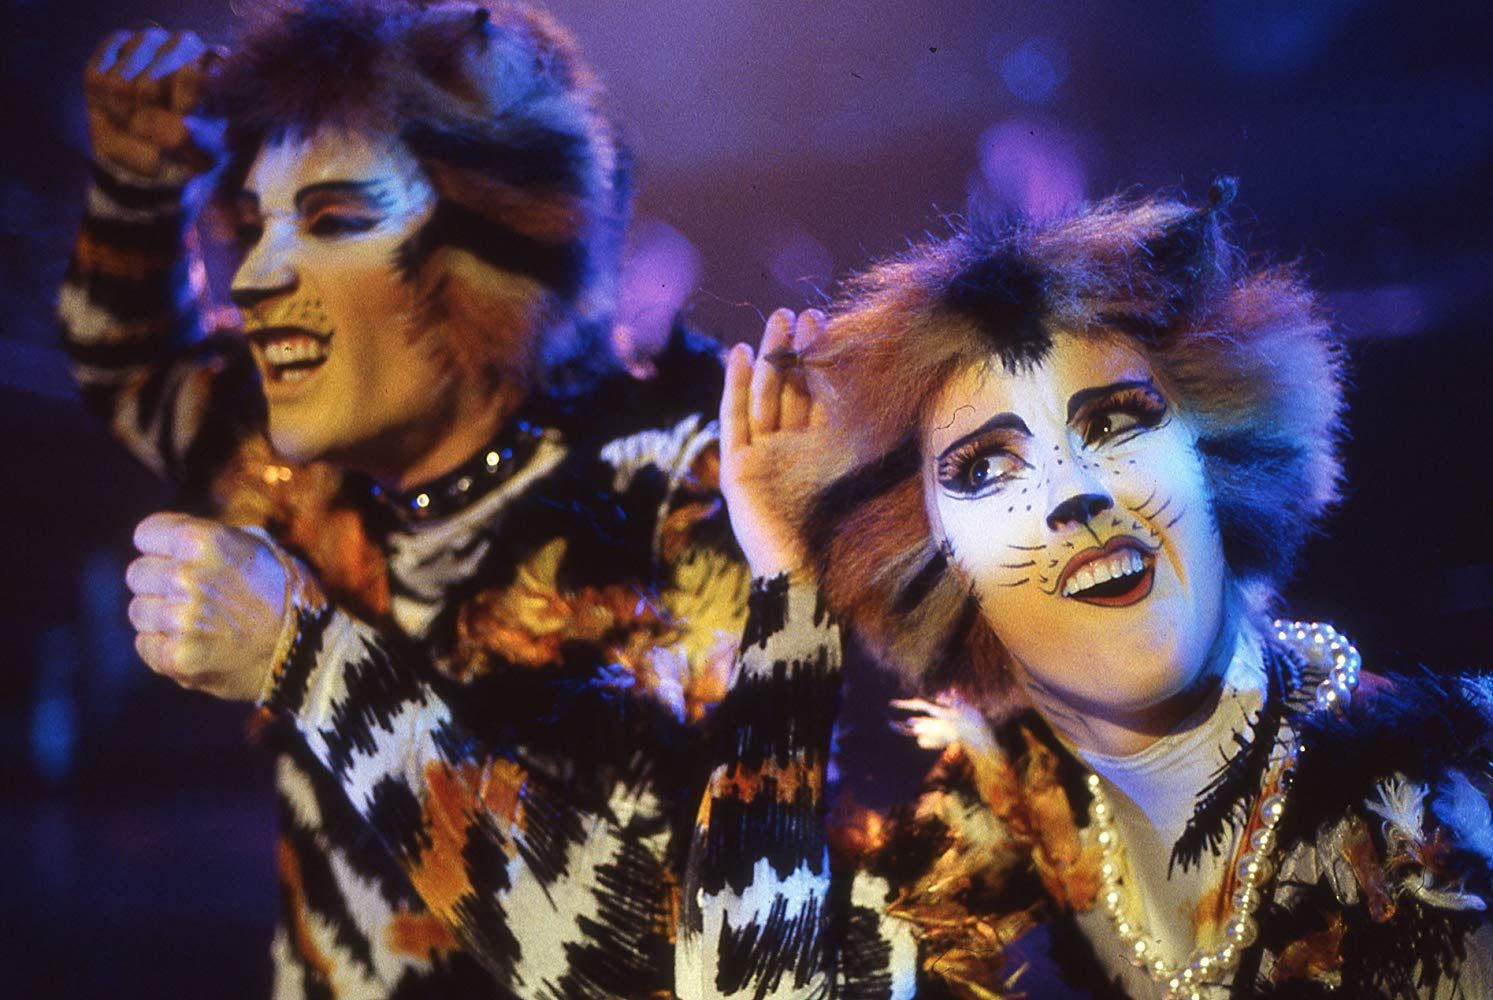 Cats 1998 In 2020 Cat Movie Cats The Musical Costume Jellicle Cats